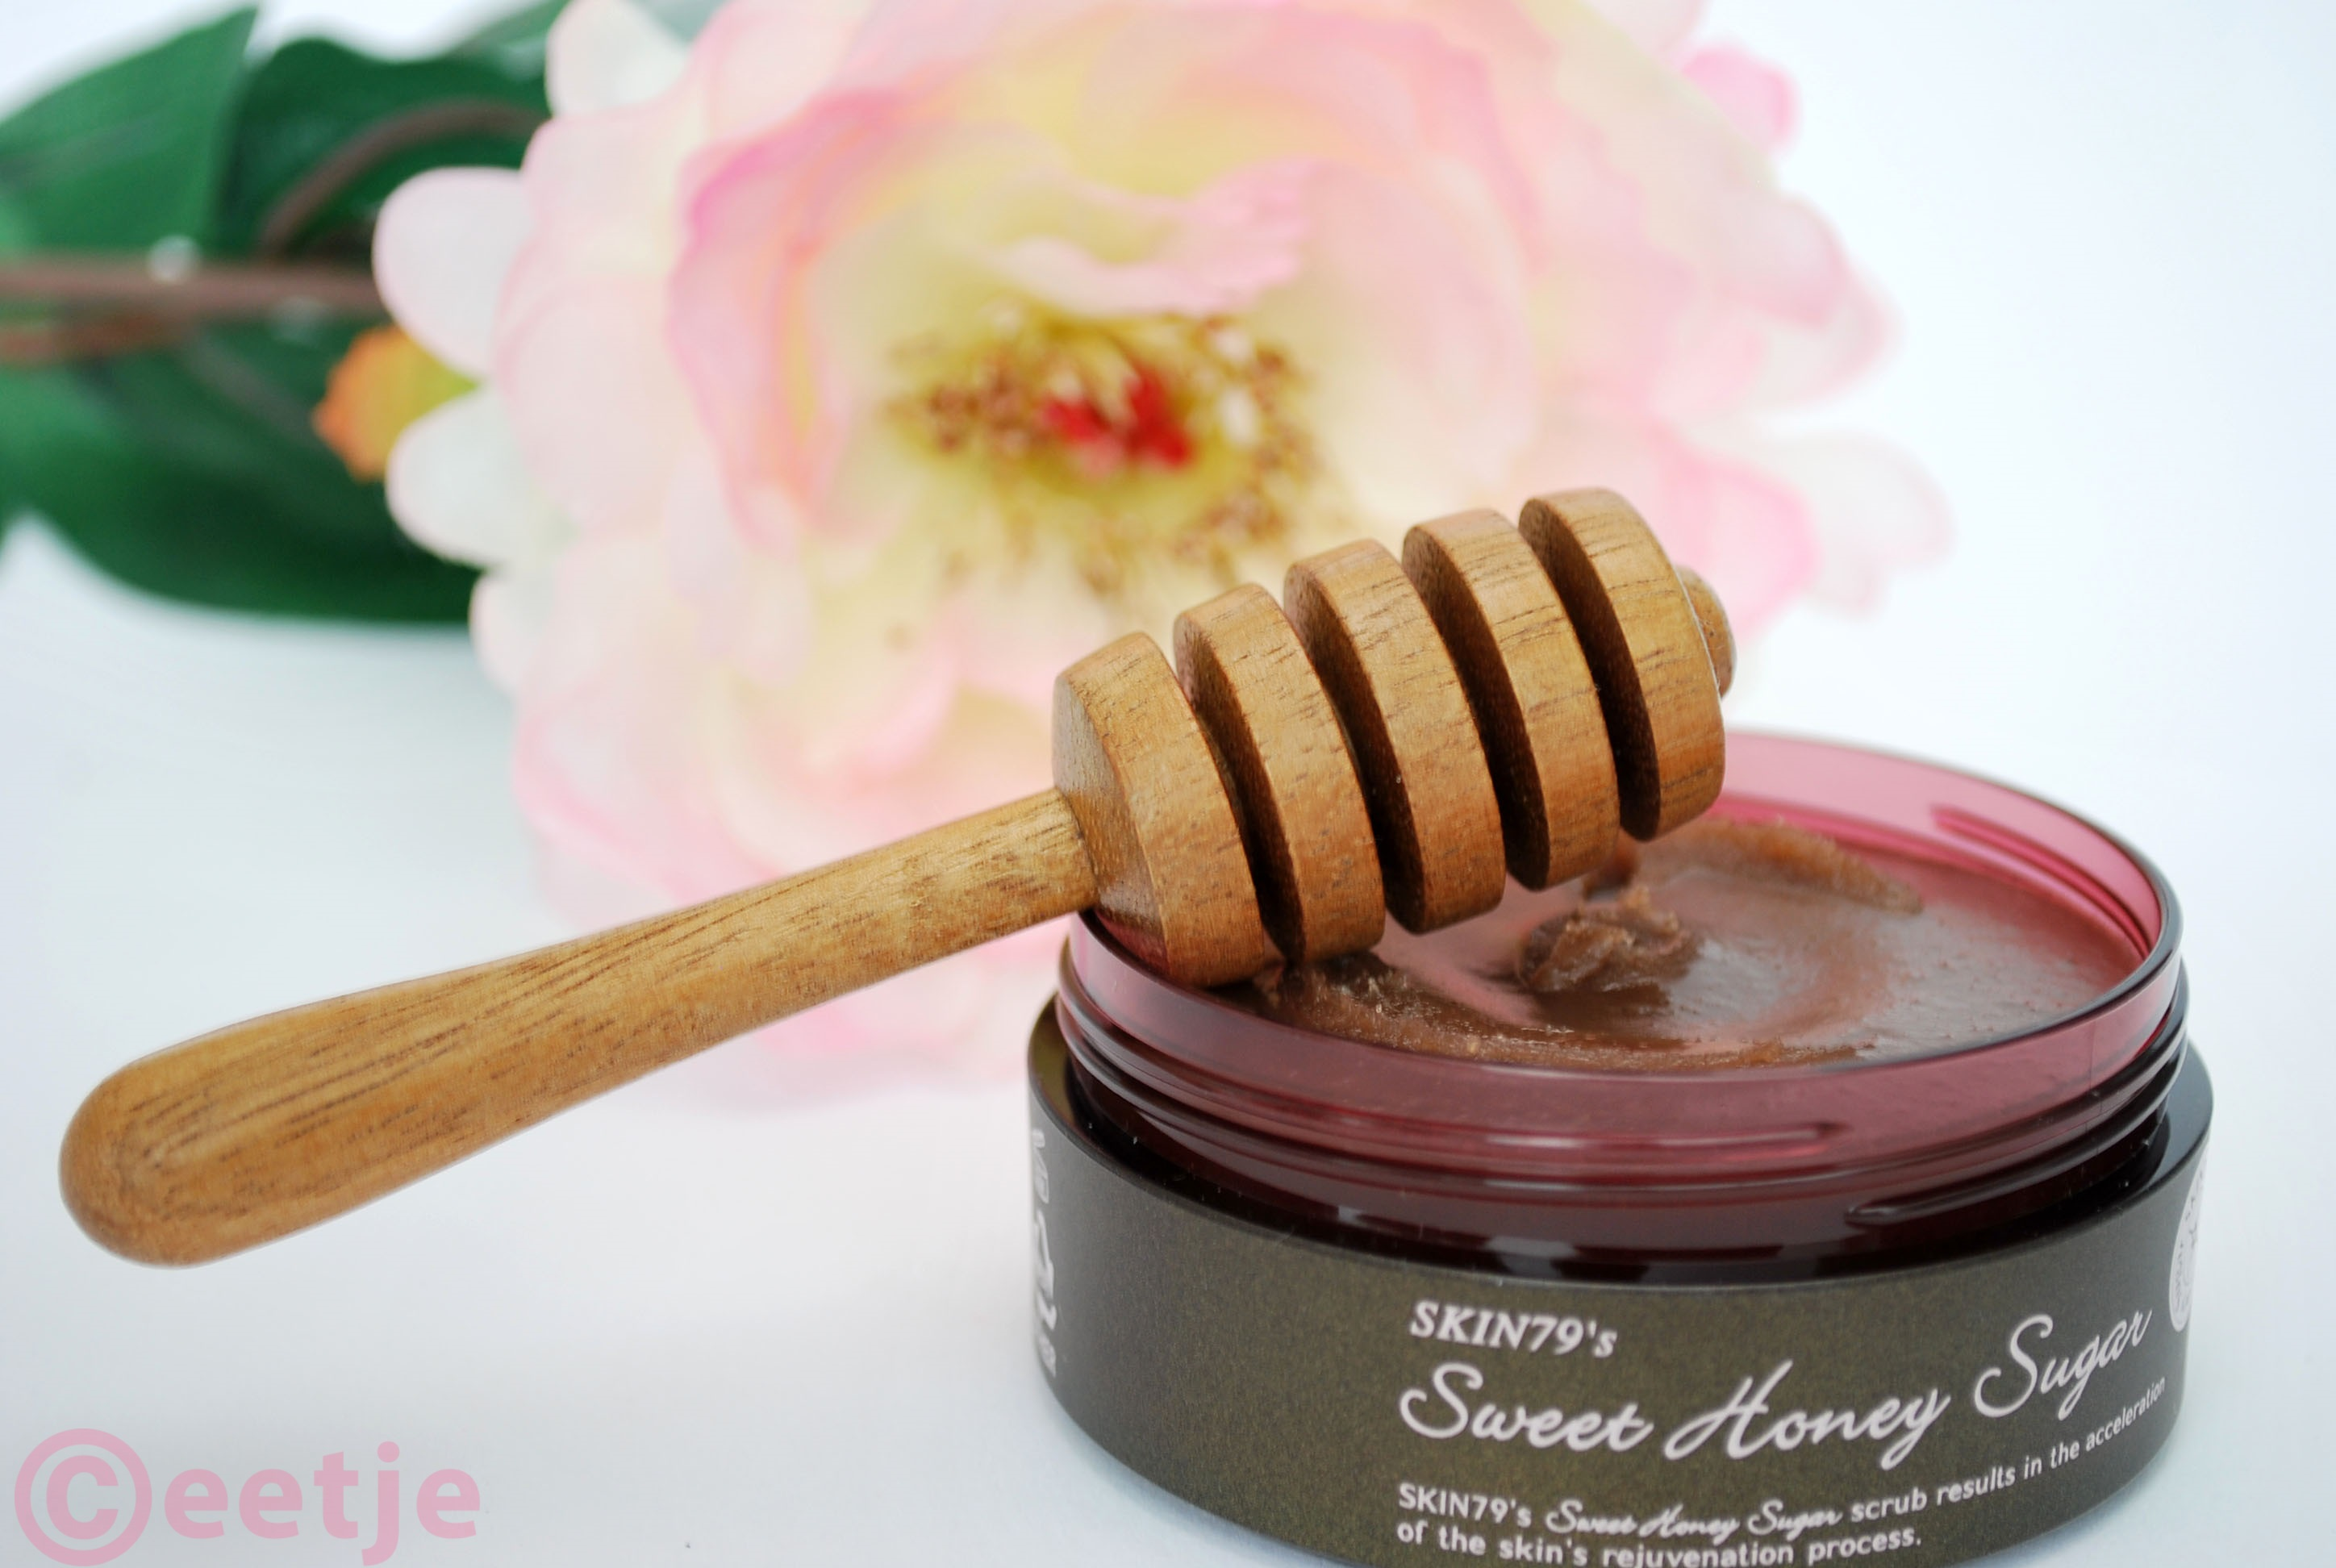 Review Sweet honey sugar scrub BB cream shop ervaring test